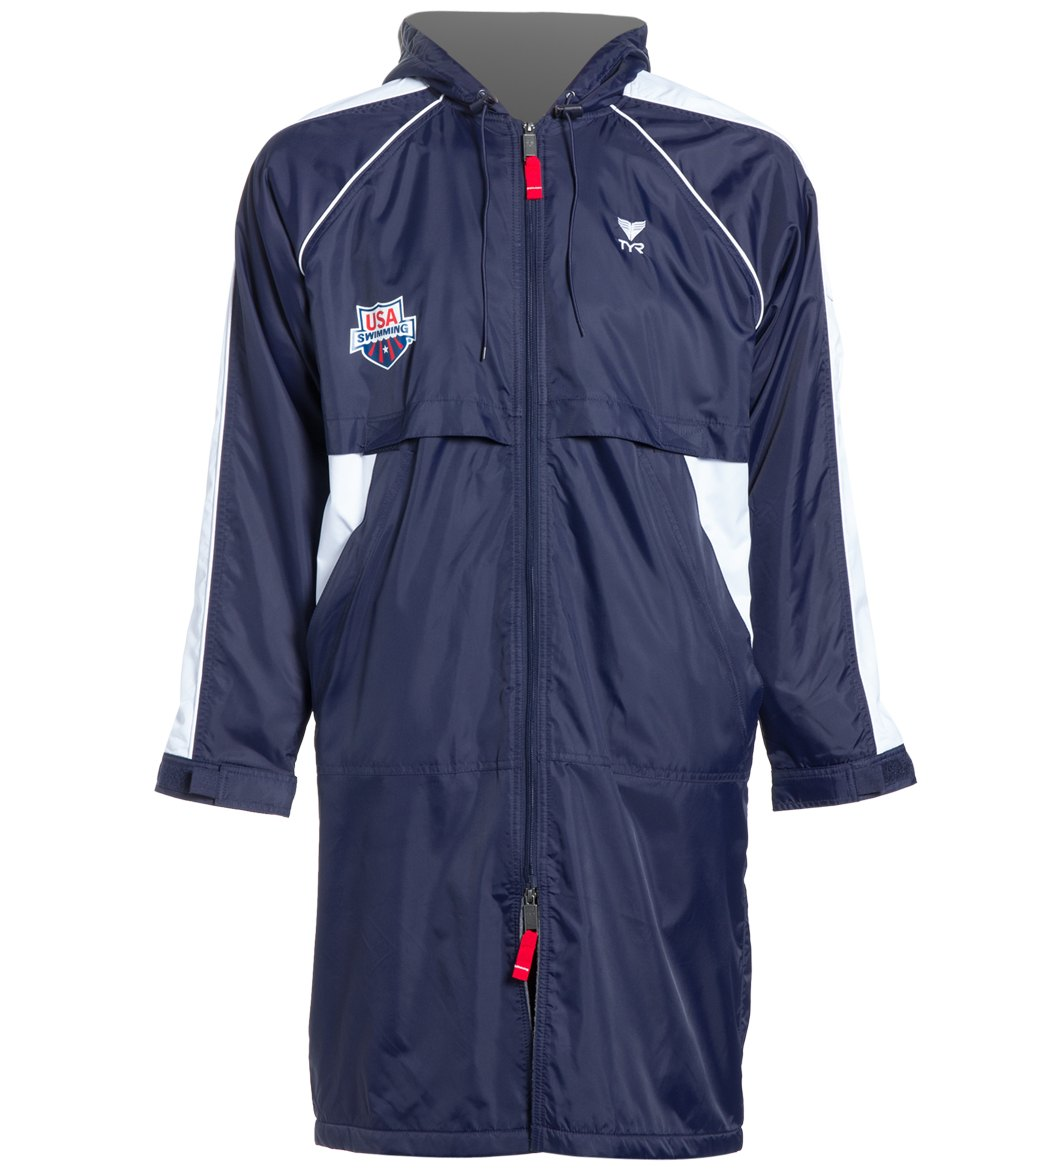 TYR USA Swimming Alliance Team Parka at SwimOutlet.com - Free Shipping